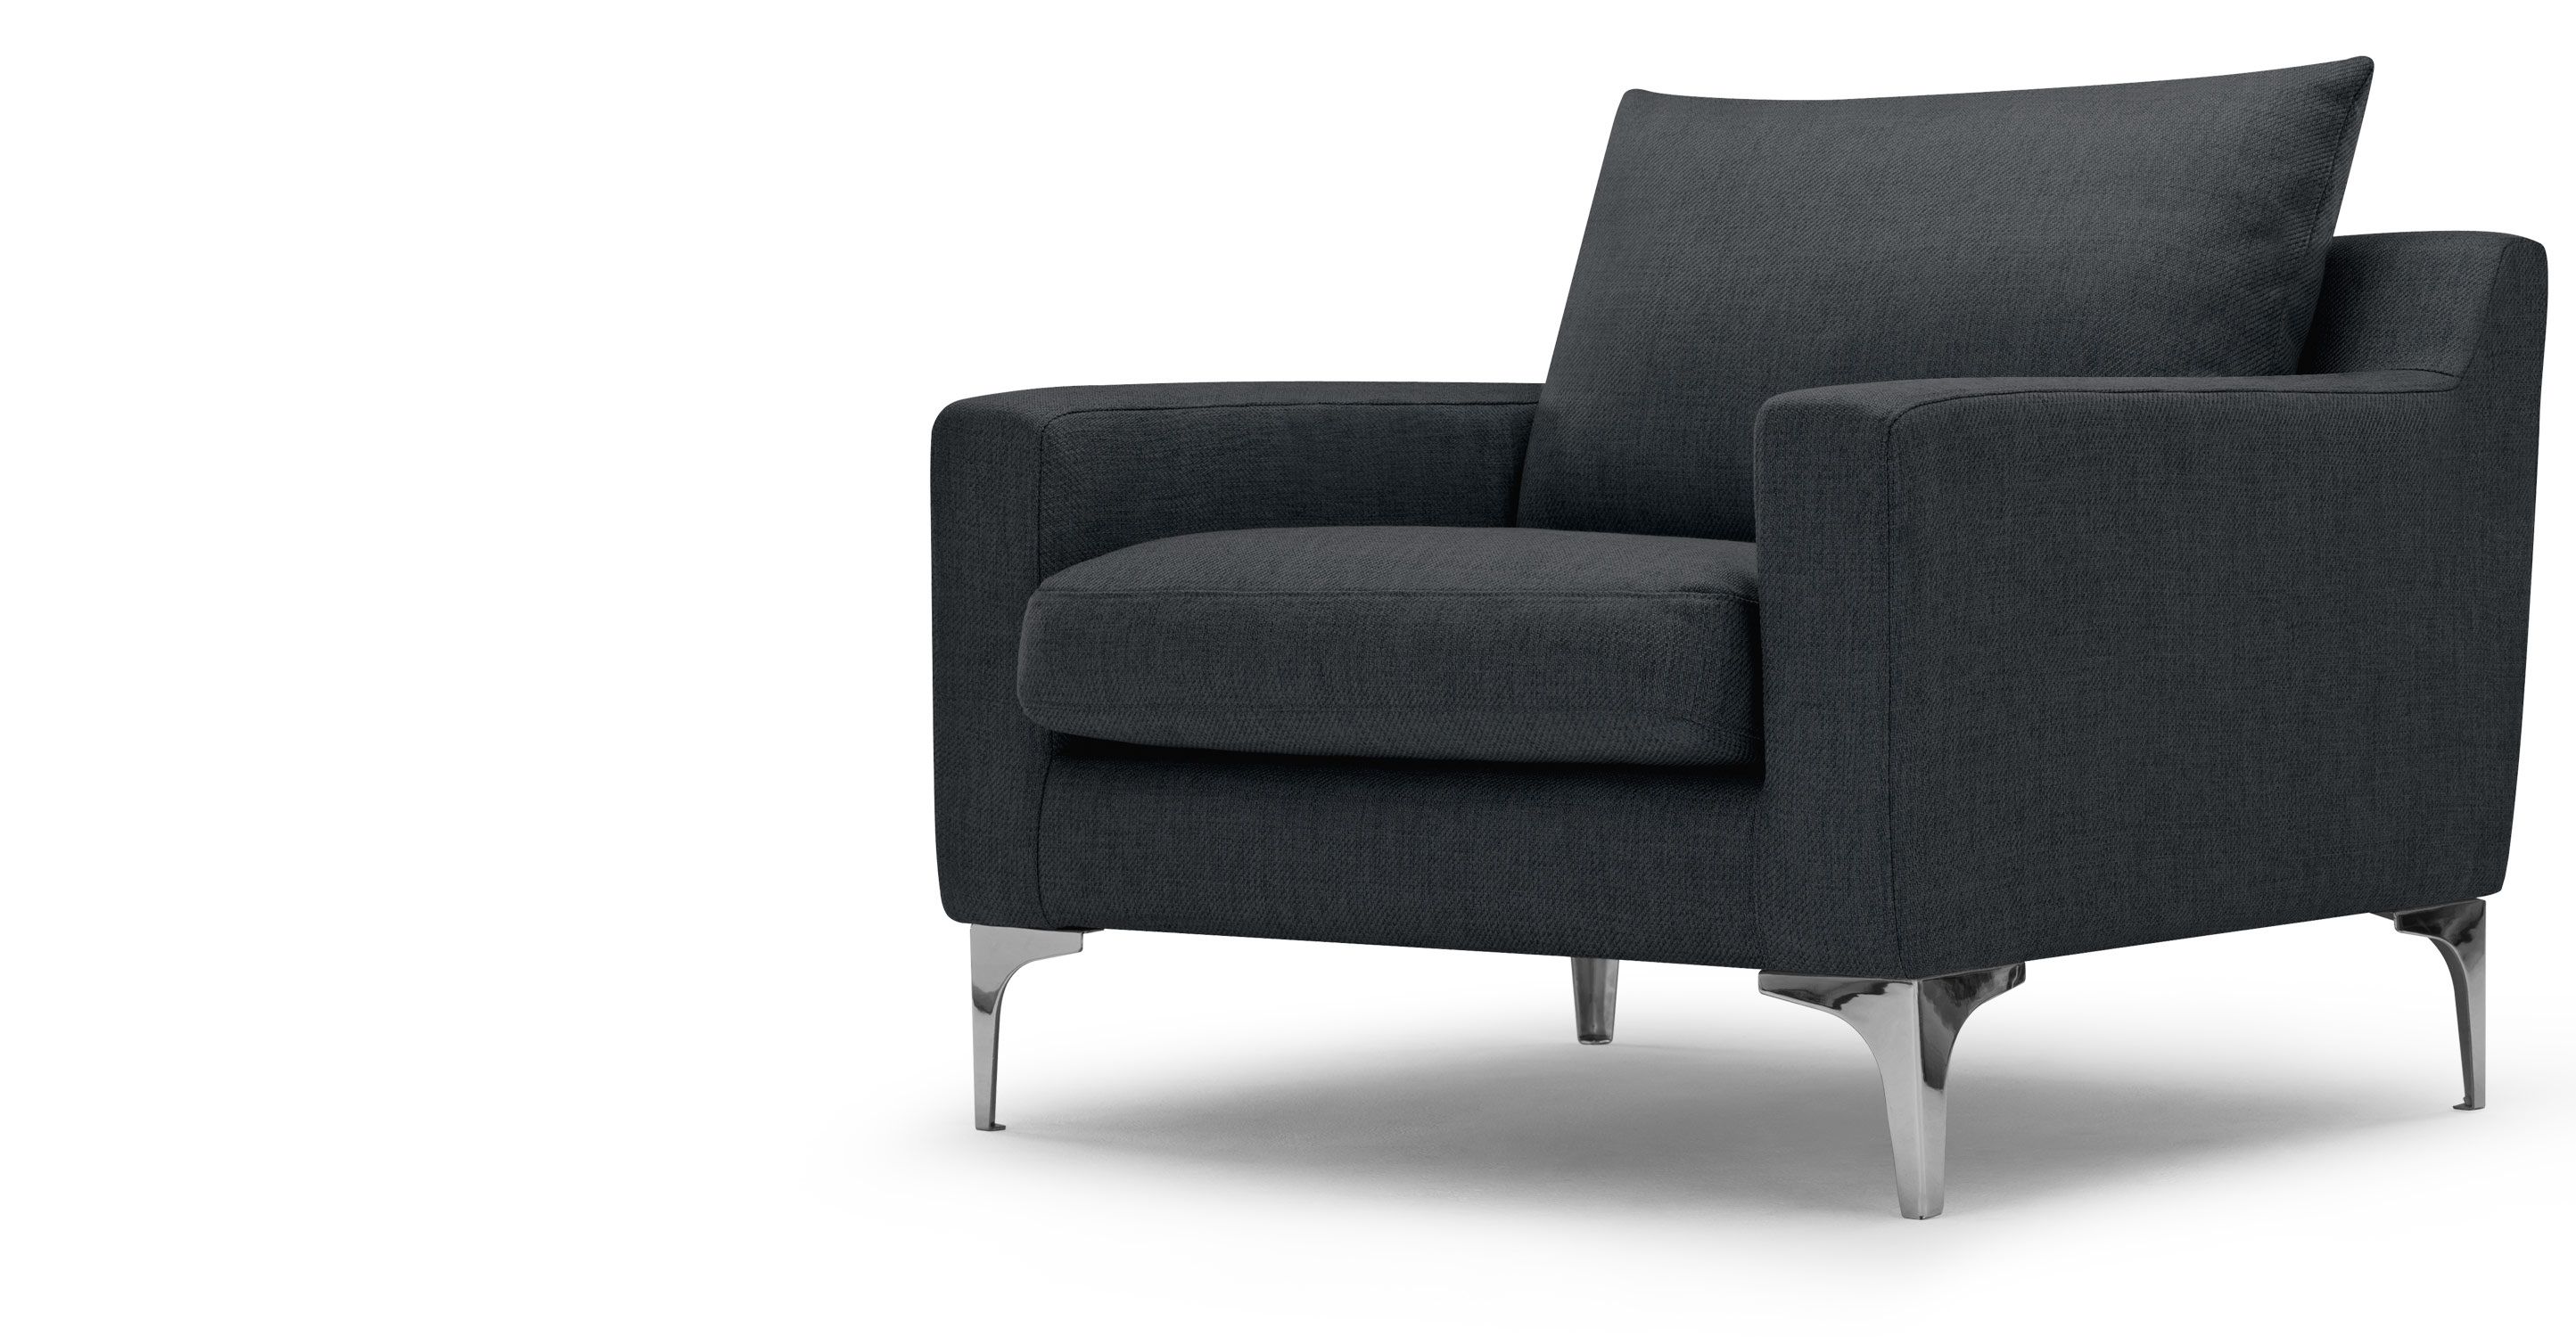 mendini armchair in anthracite grey. Black Bedroom Furniture Sets. Home Design Ideas